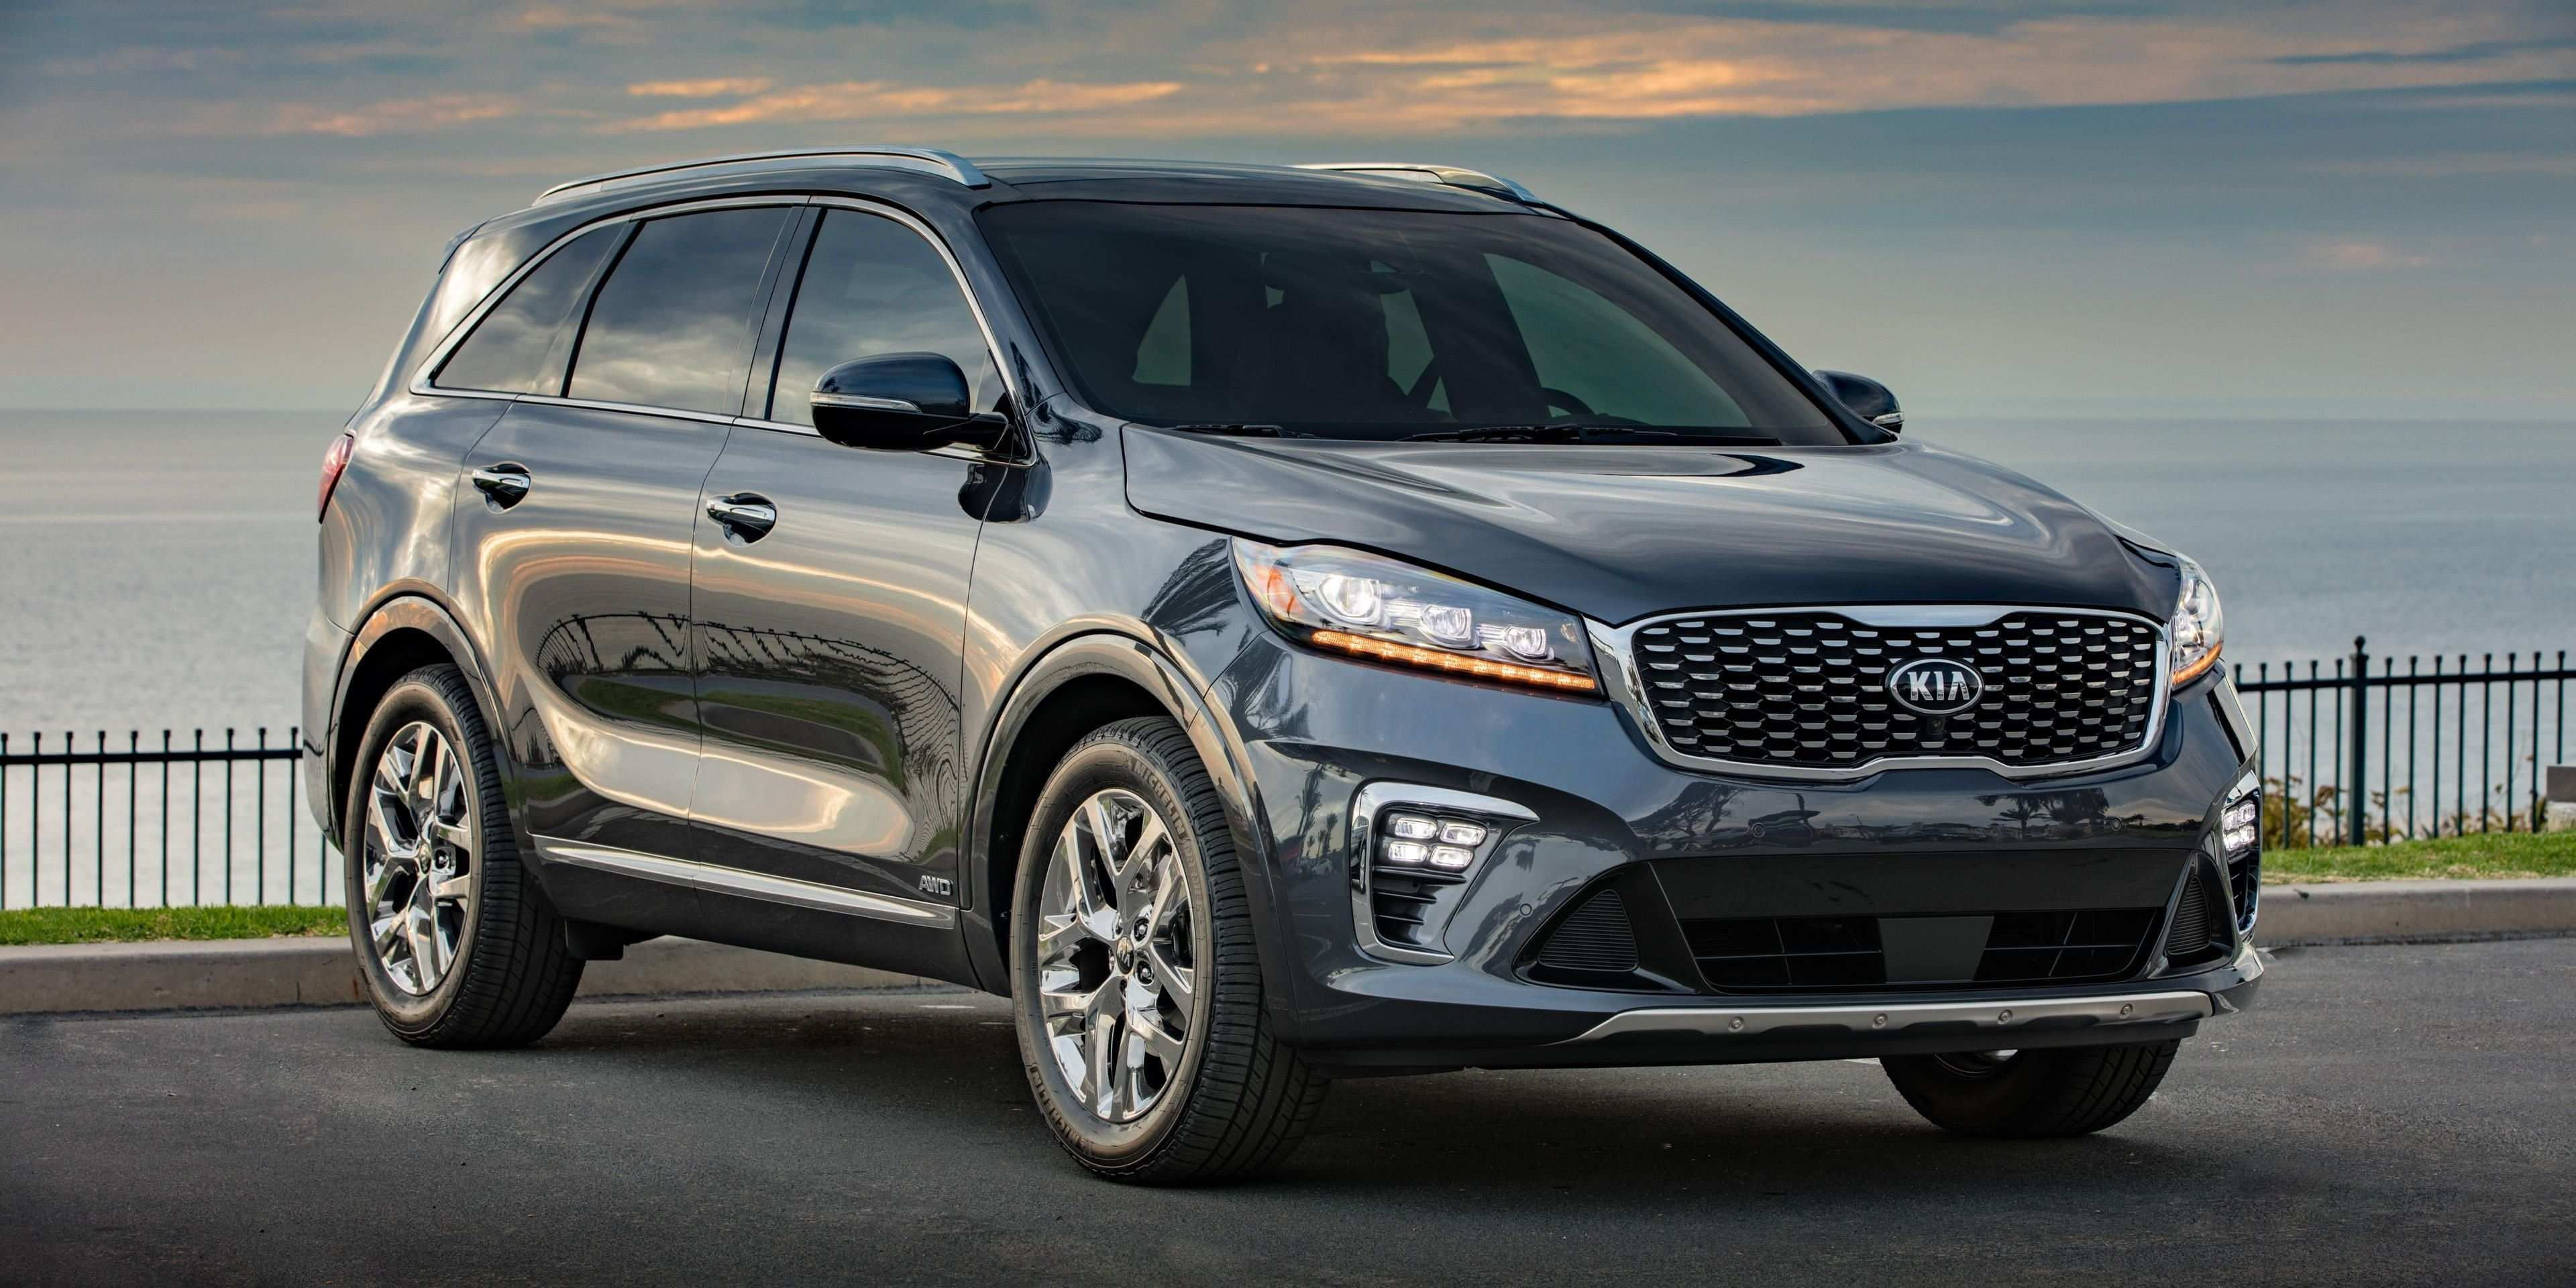 82 Best Review 2020 Kia Sorento White Price by 2020 Kia Sorento White